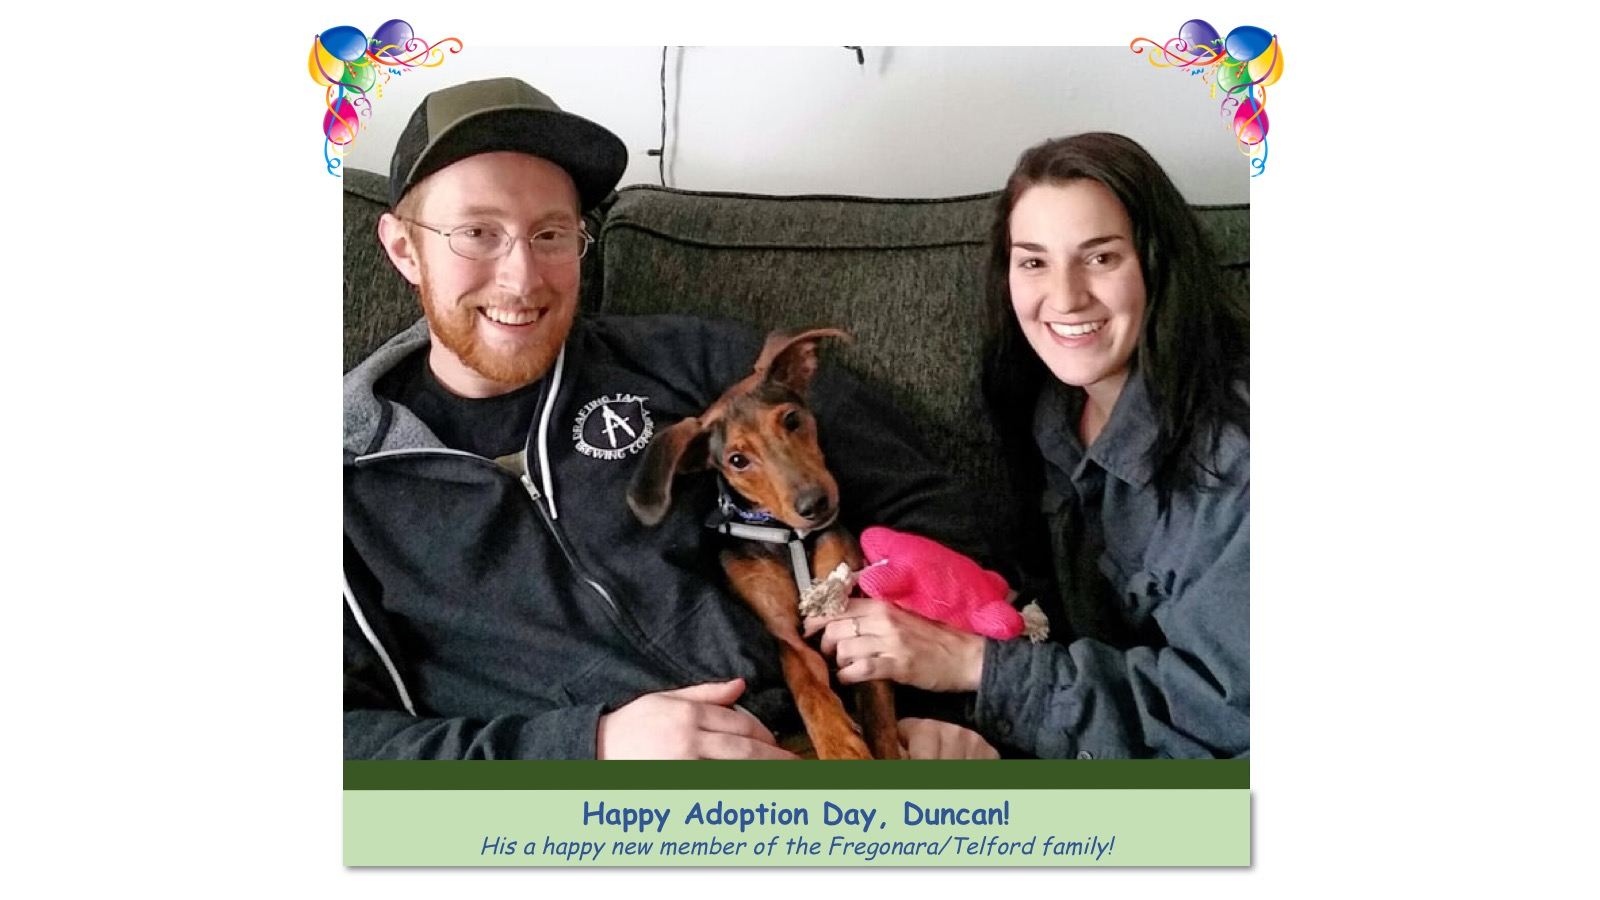 Duncan_Adoption_photo.jpg